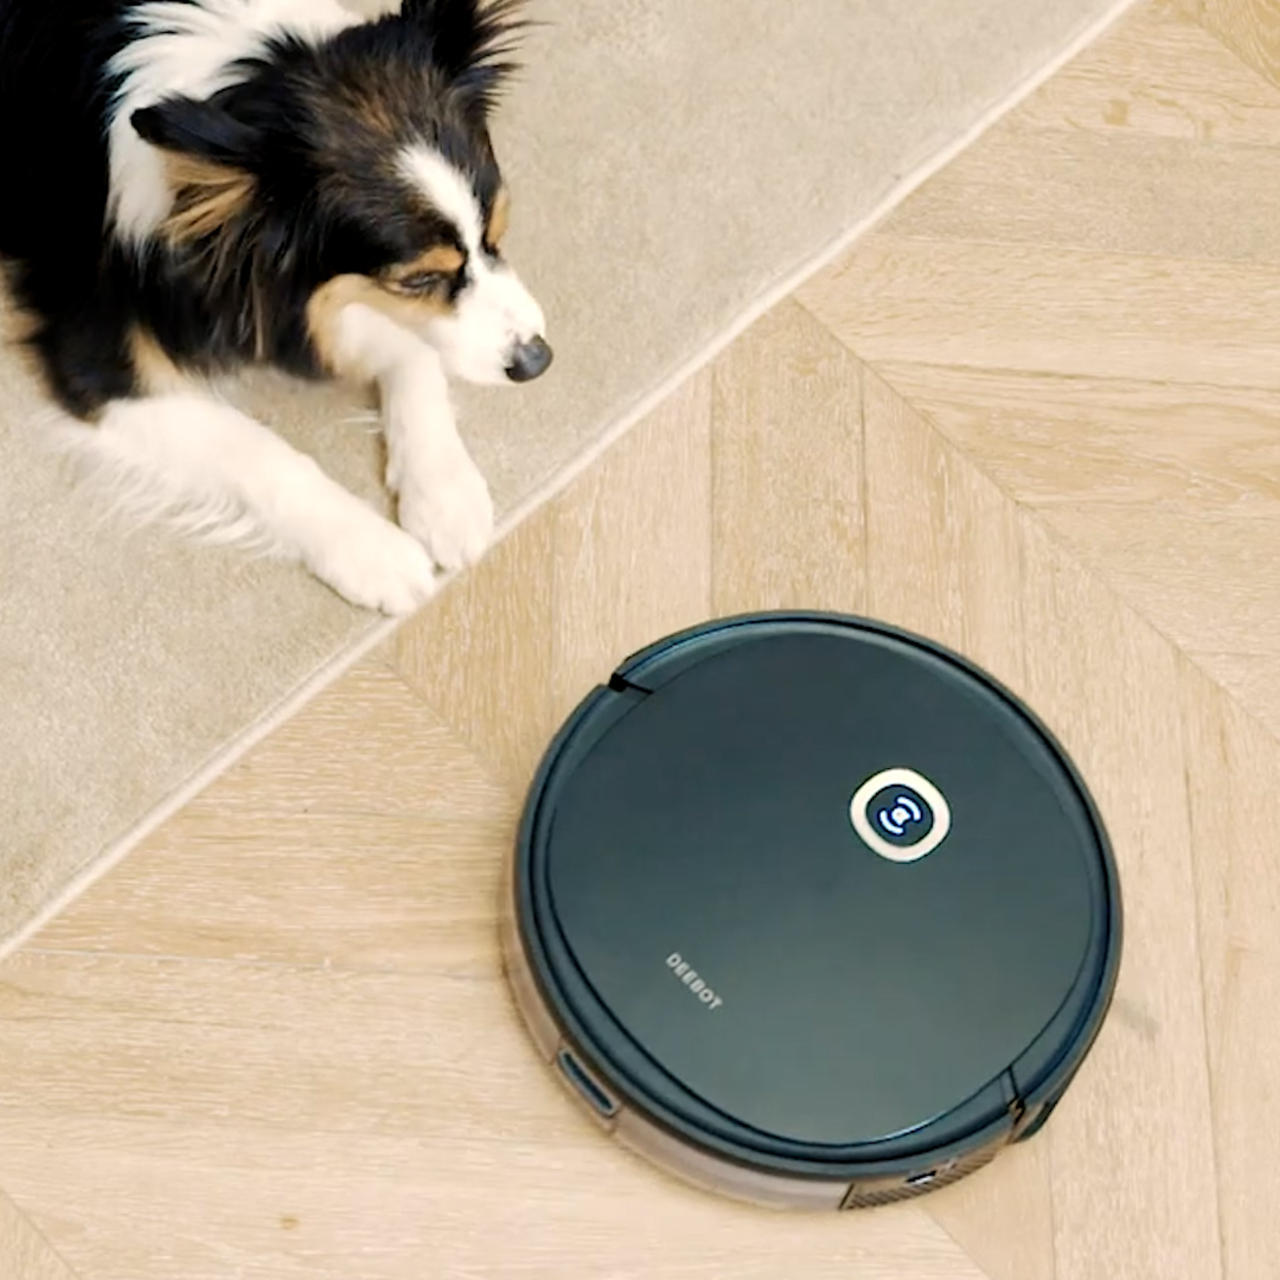 The EcoVacs Deebot is the ultimate robot vacuum cleaner that Amazon shoppers love